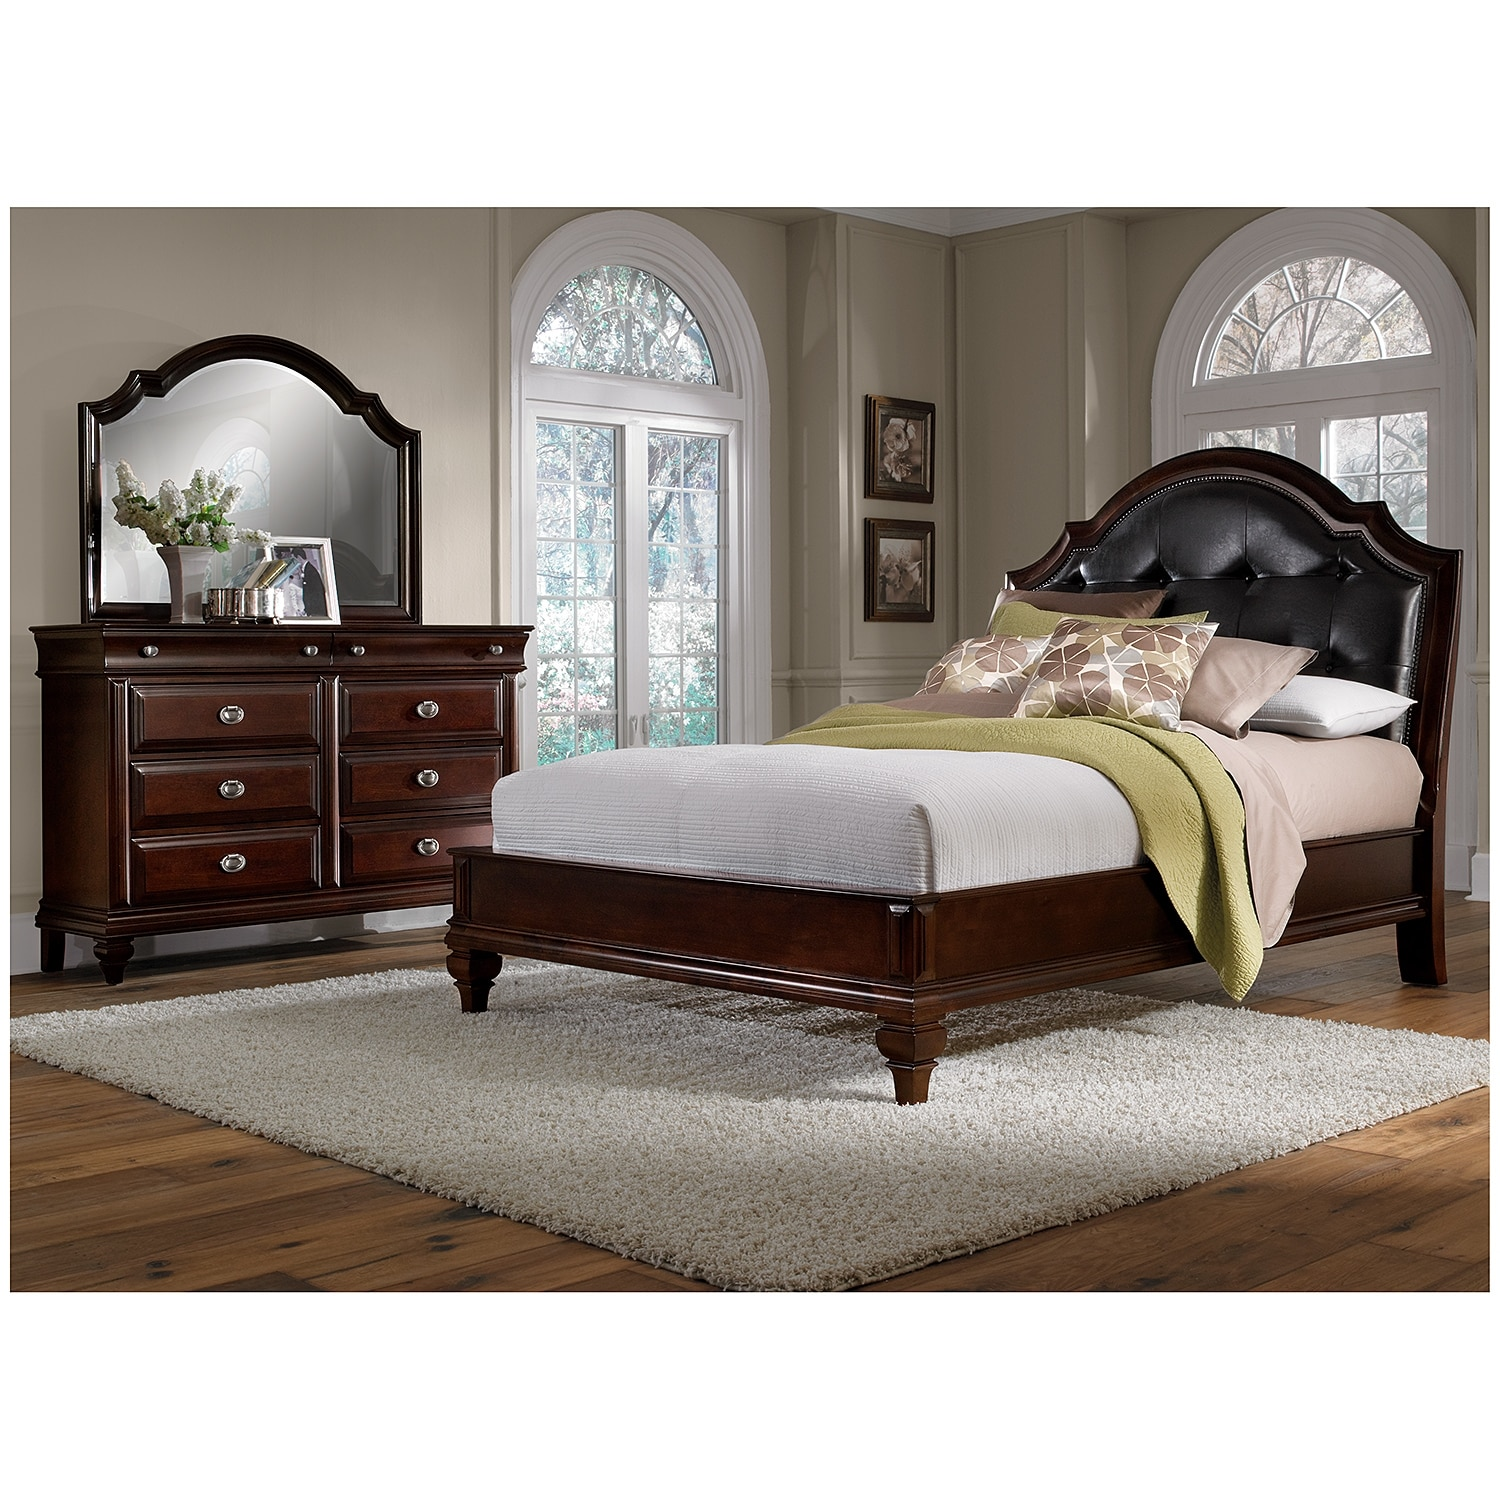 Manhattan 5 Piece Queen Bedroom Set   Cherry By Pulaski. Bedroom Furniture    Manhattan 5 Piece Queen Bedroom Set ...